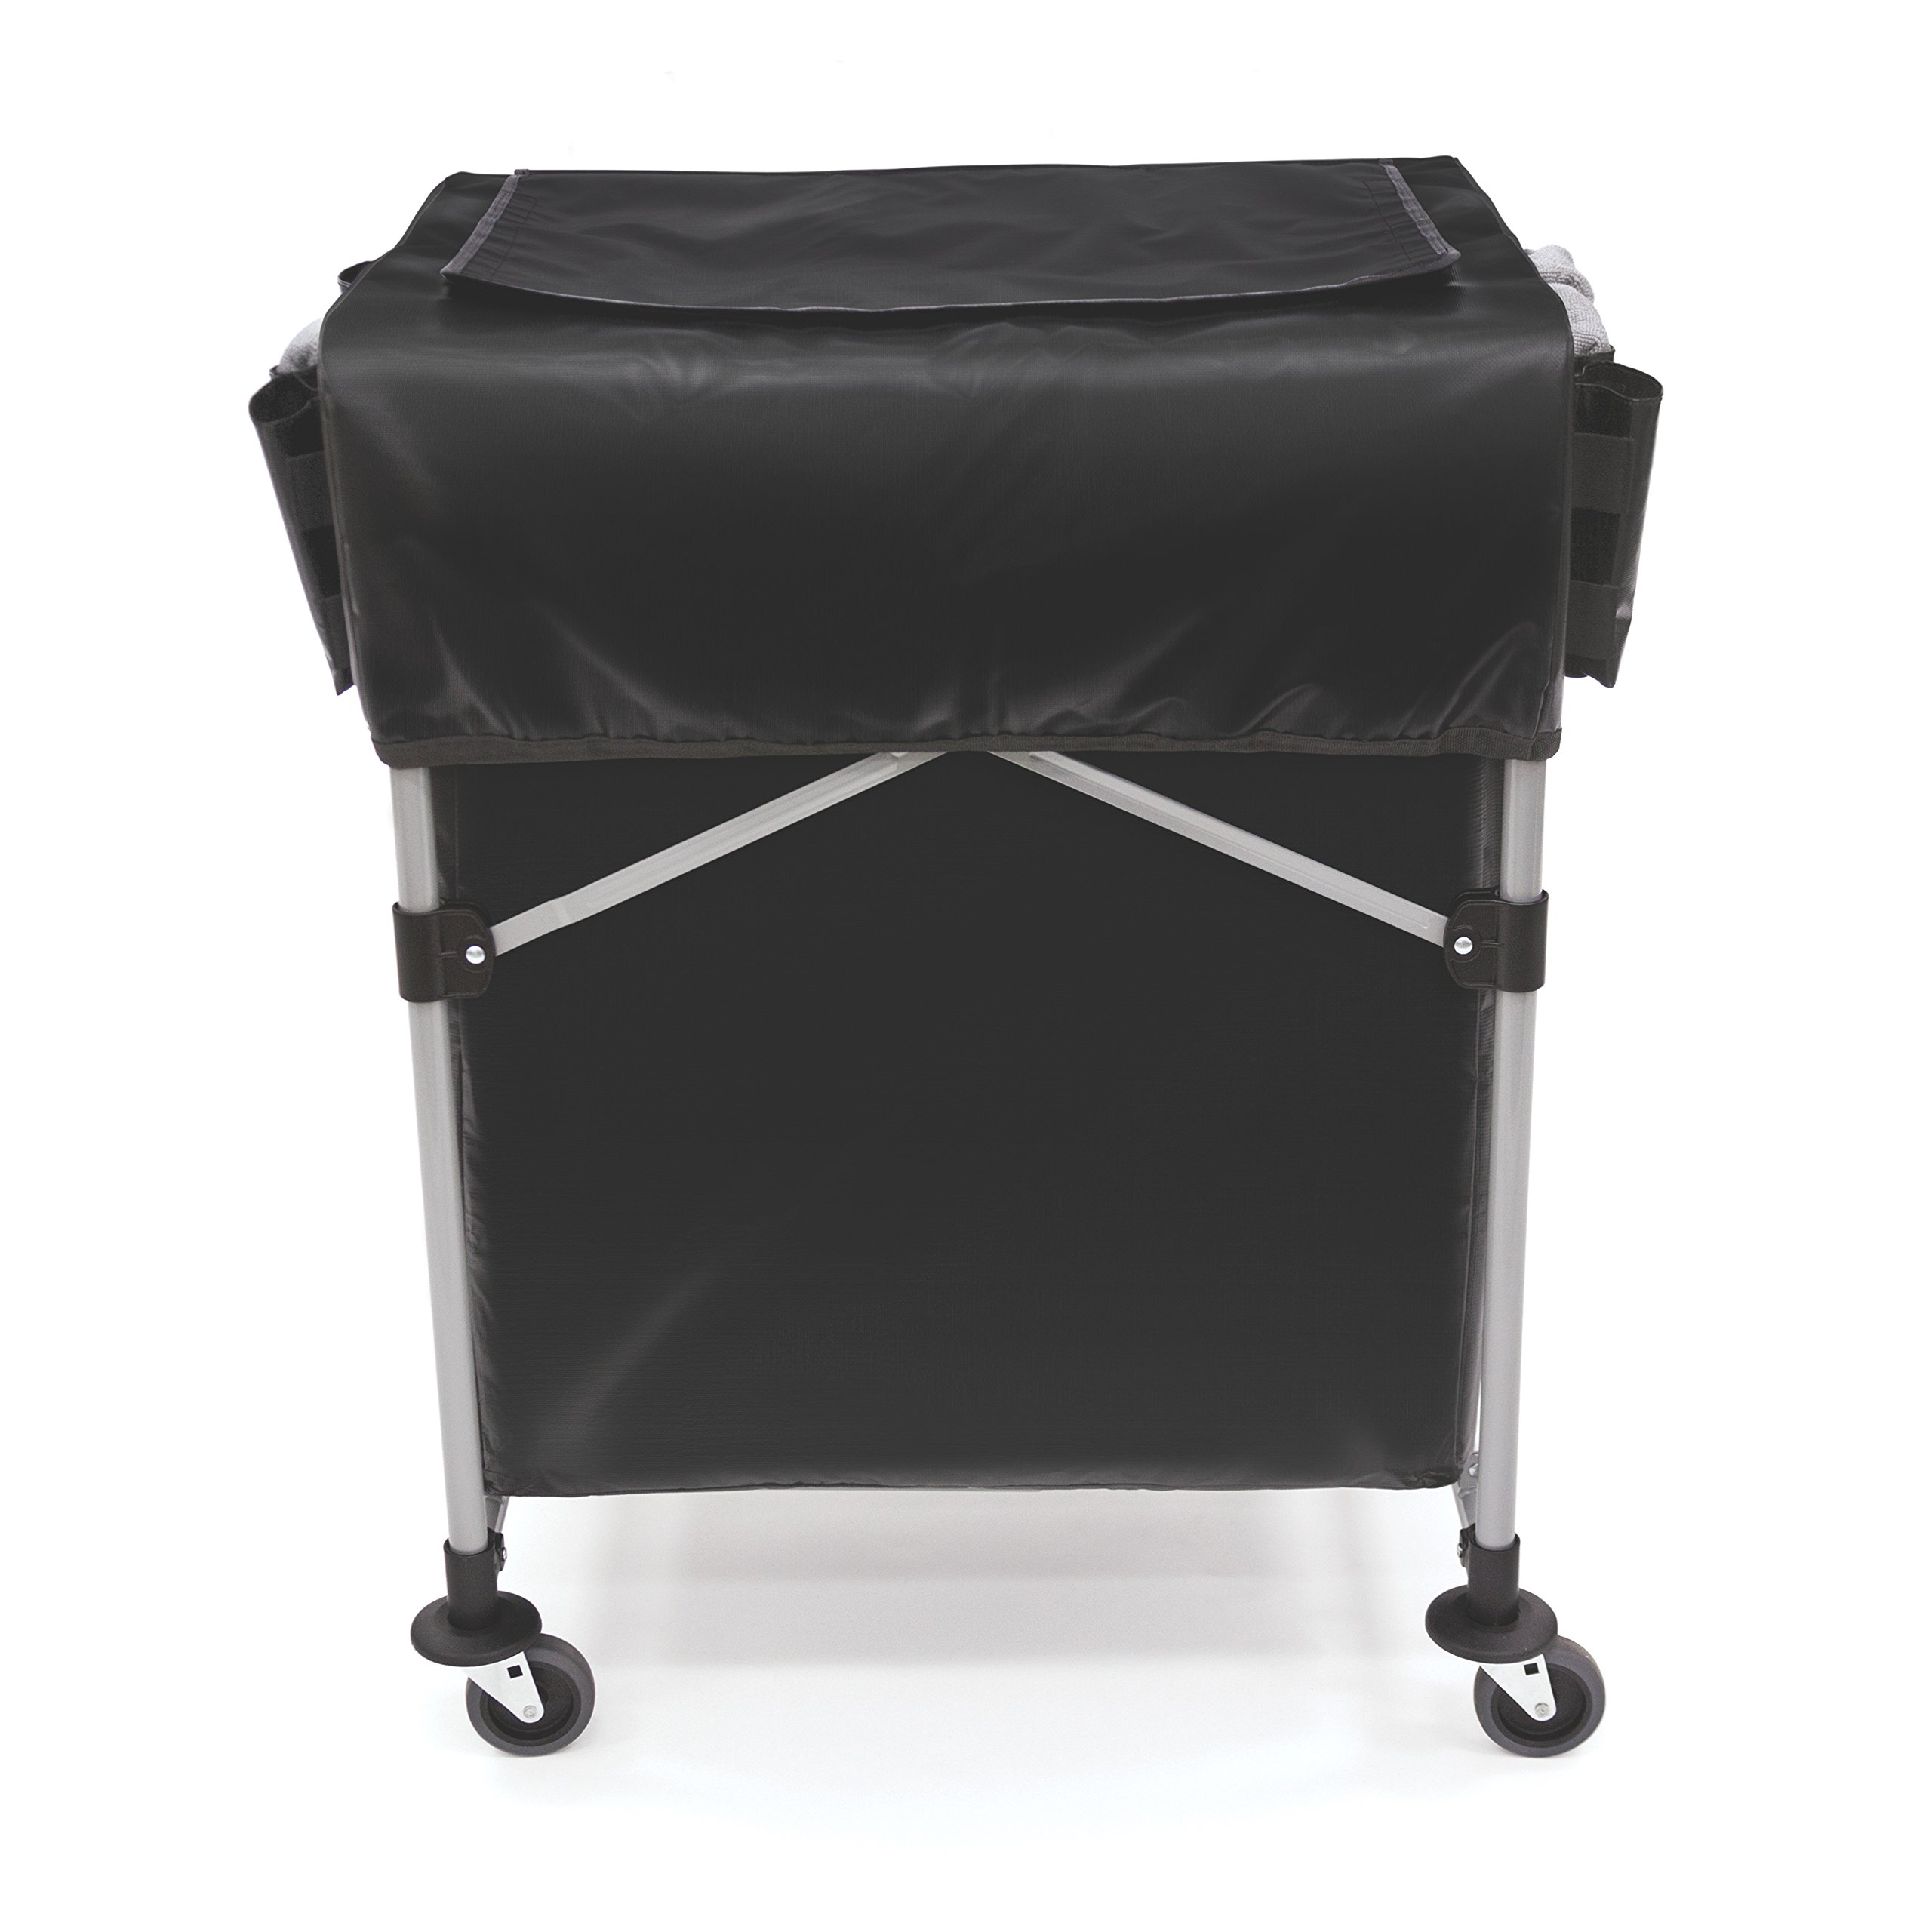 Rubbermaid Commercial Products 1889863 Cover for Collapsible x-CART, Small